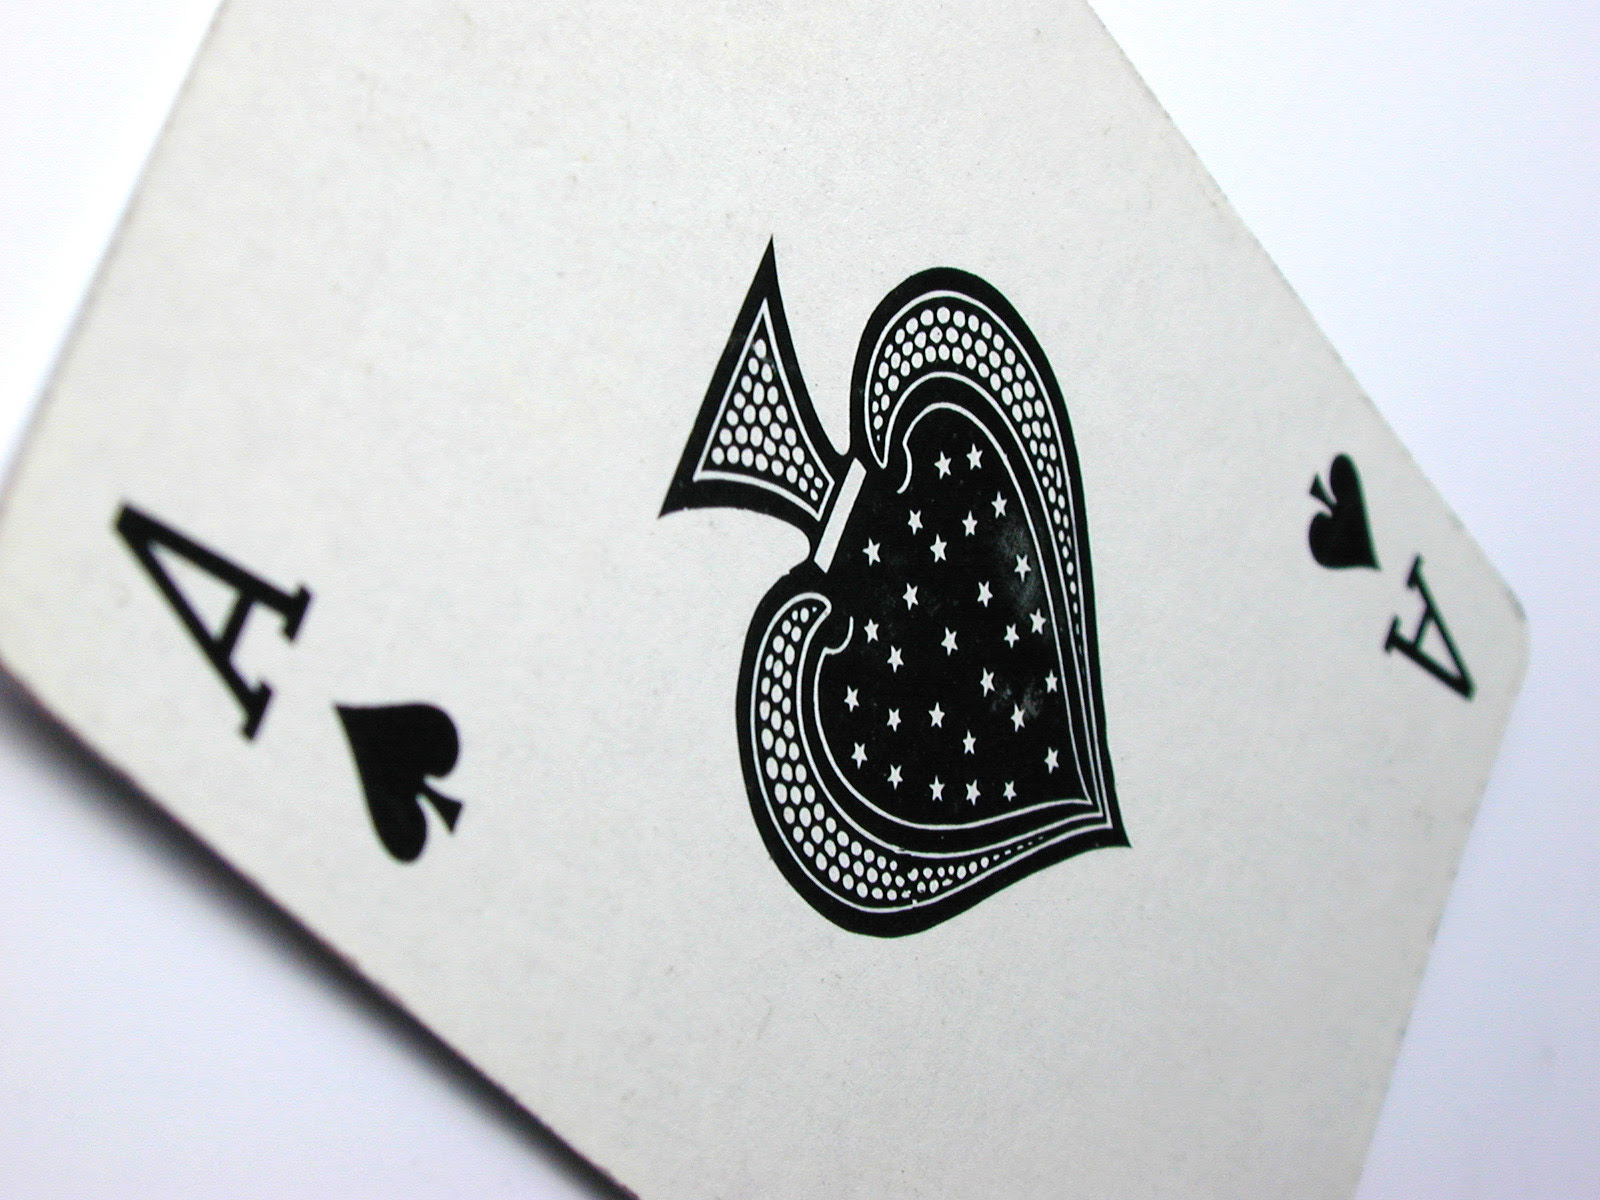 Free Image Of Ace Of Spades